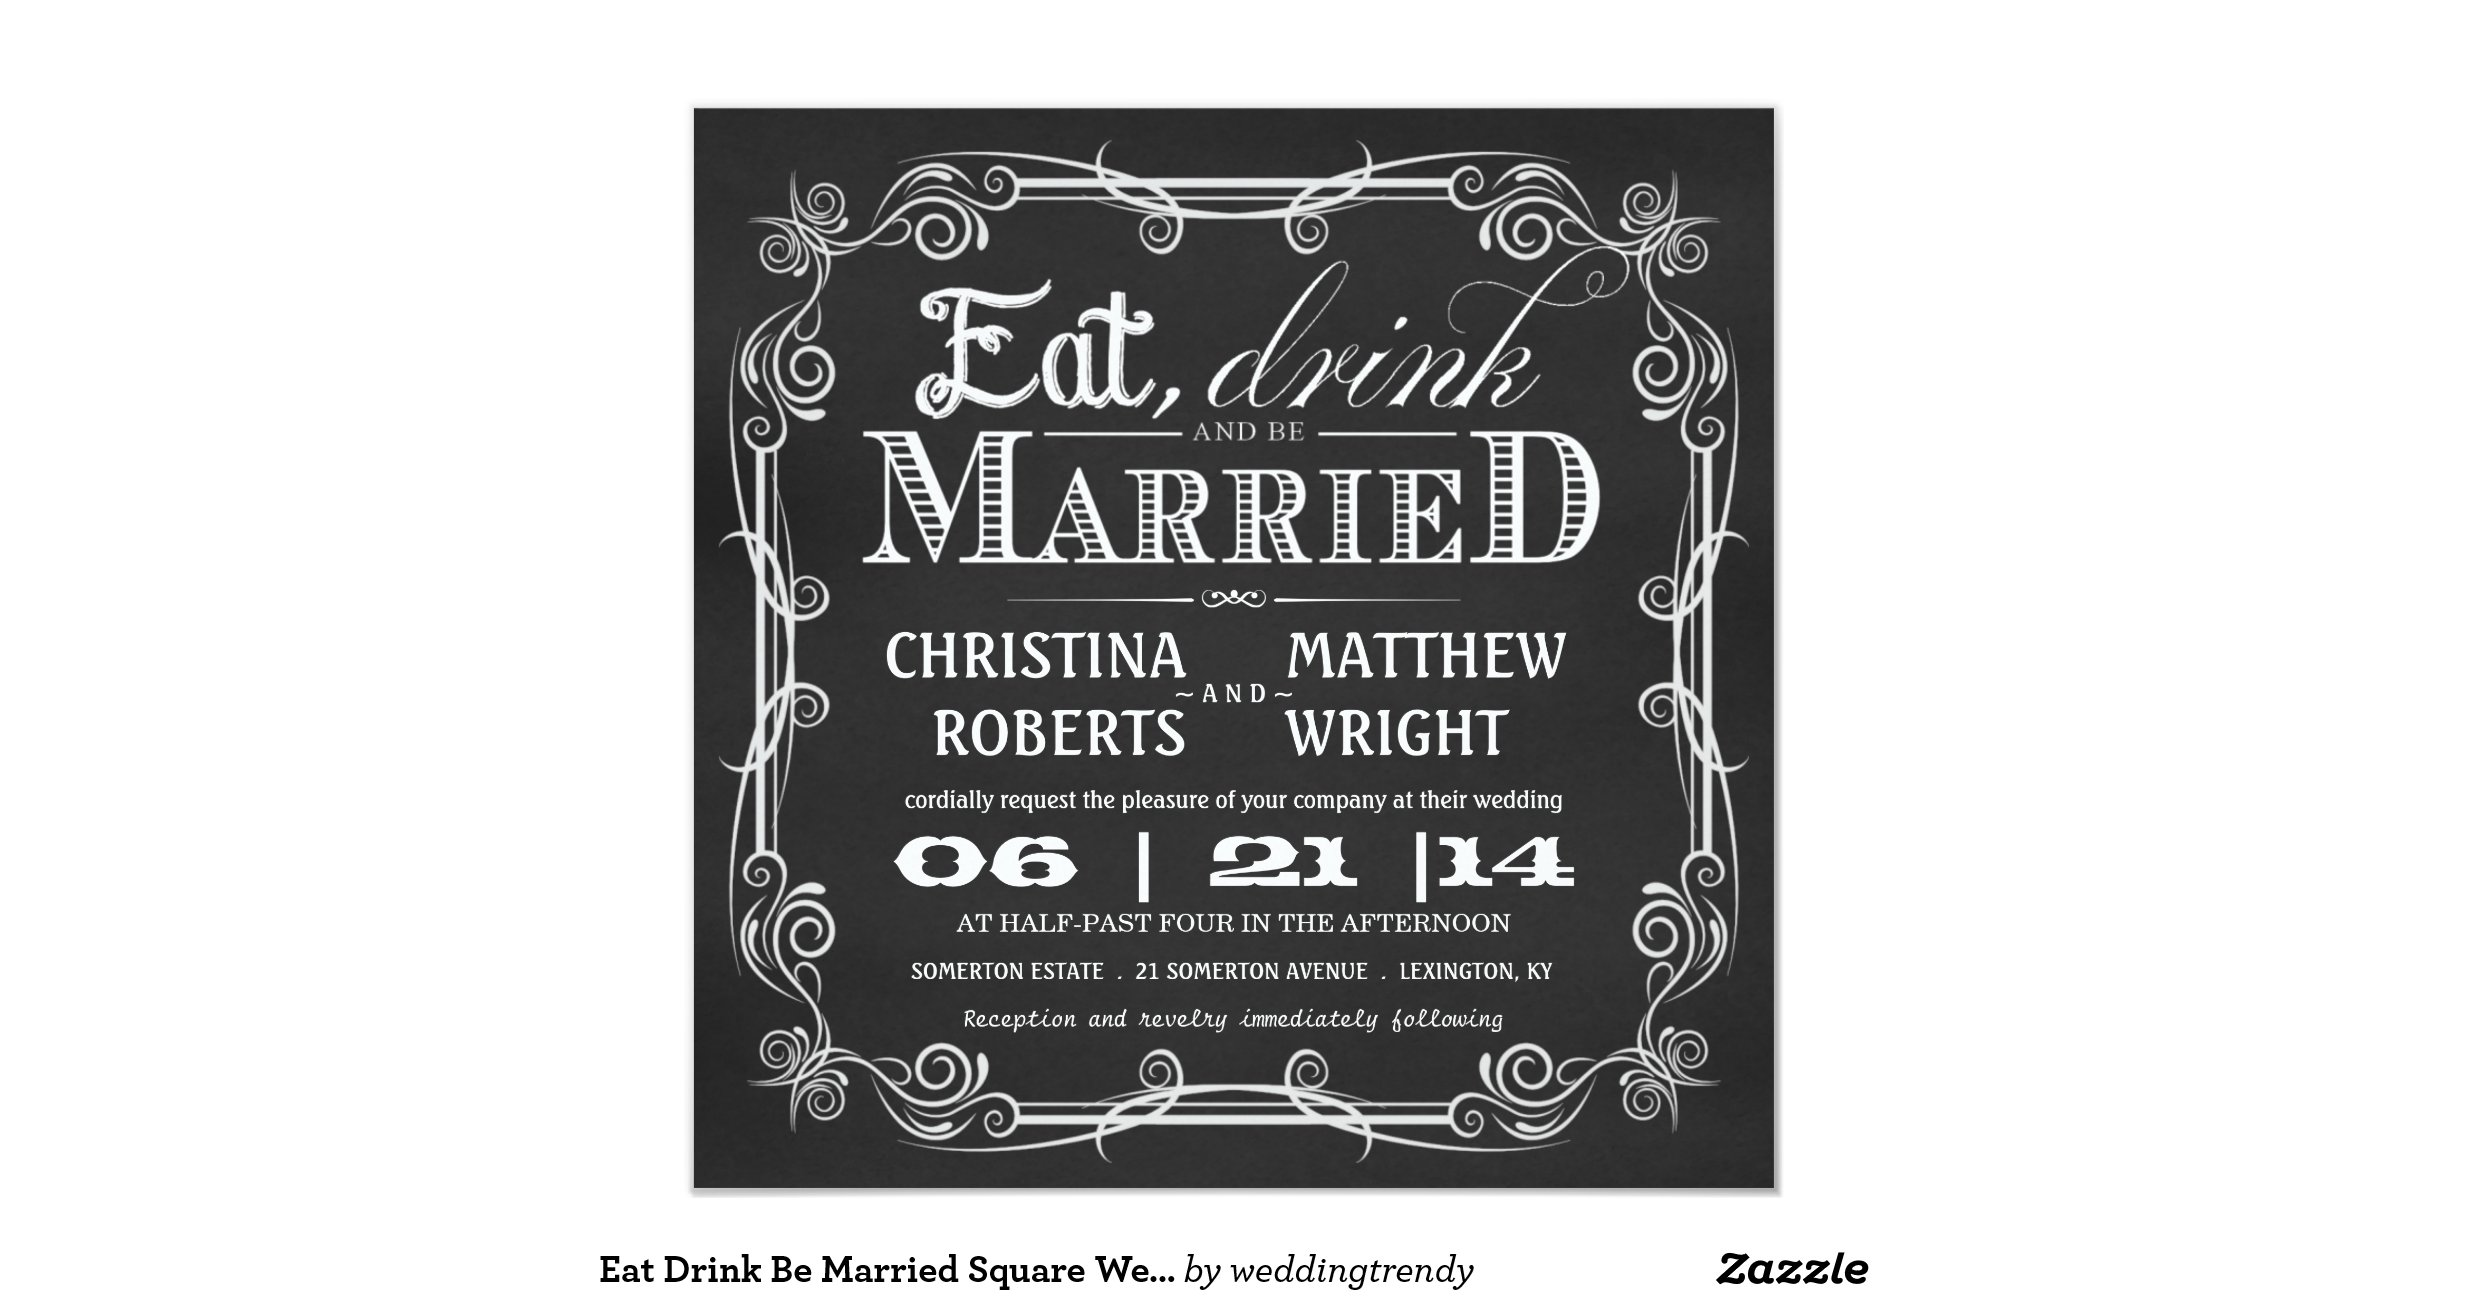 Wedding Invitations Eat Drink And Be Married: Eat_drink_be_married_square_wedding_invitations